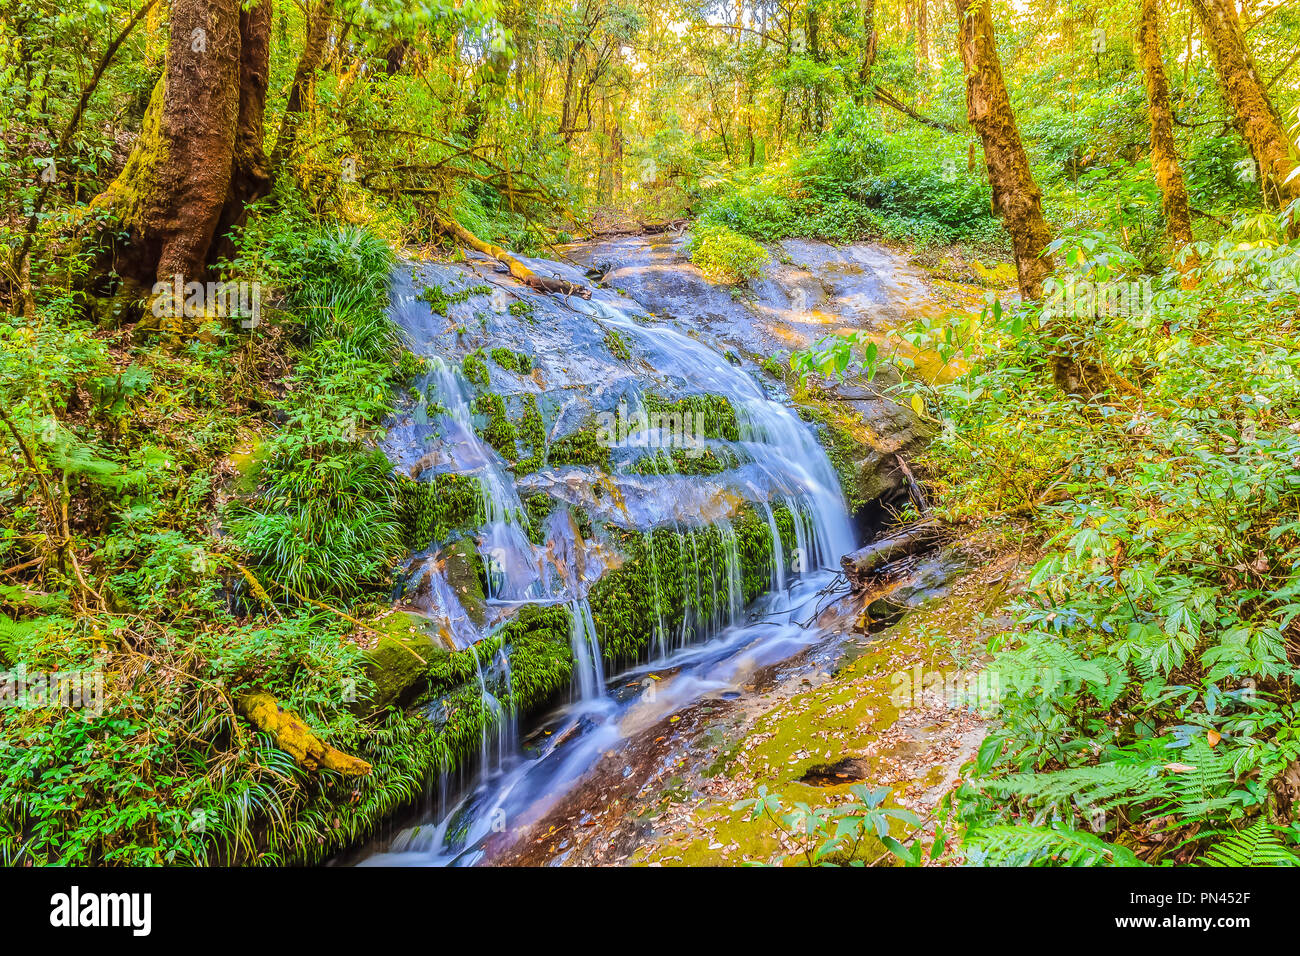 Peaceful tropical forest with small tranquil waterfall at Kiew Mae Pan trekking route in Doi Intanon national park, Chiang Mai, Thailand. - Stock Image